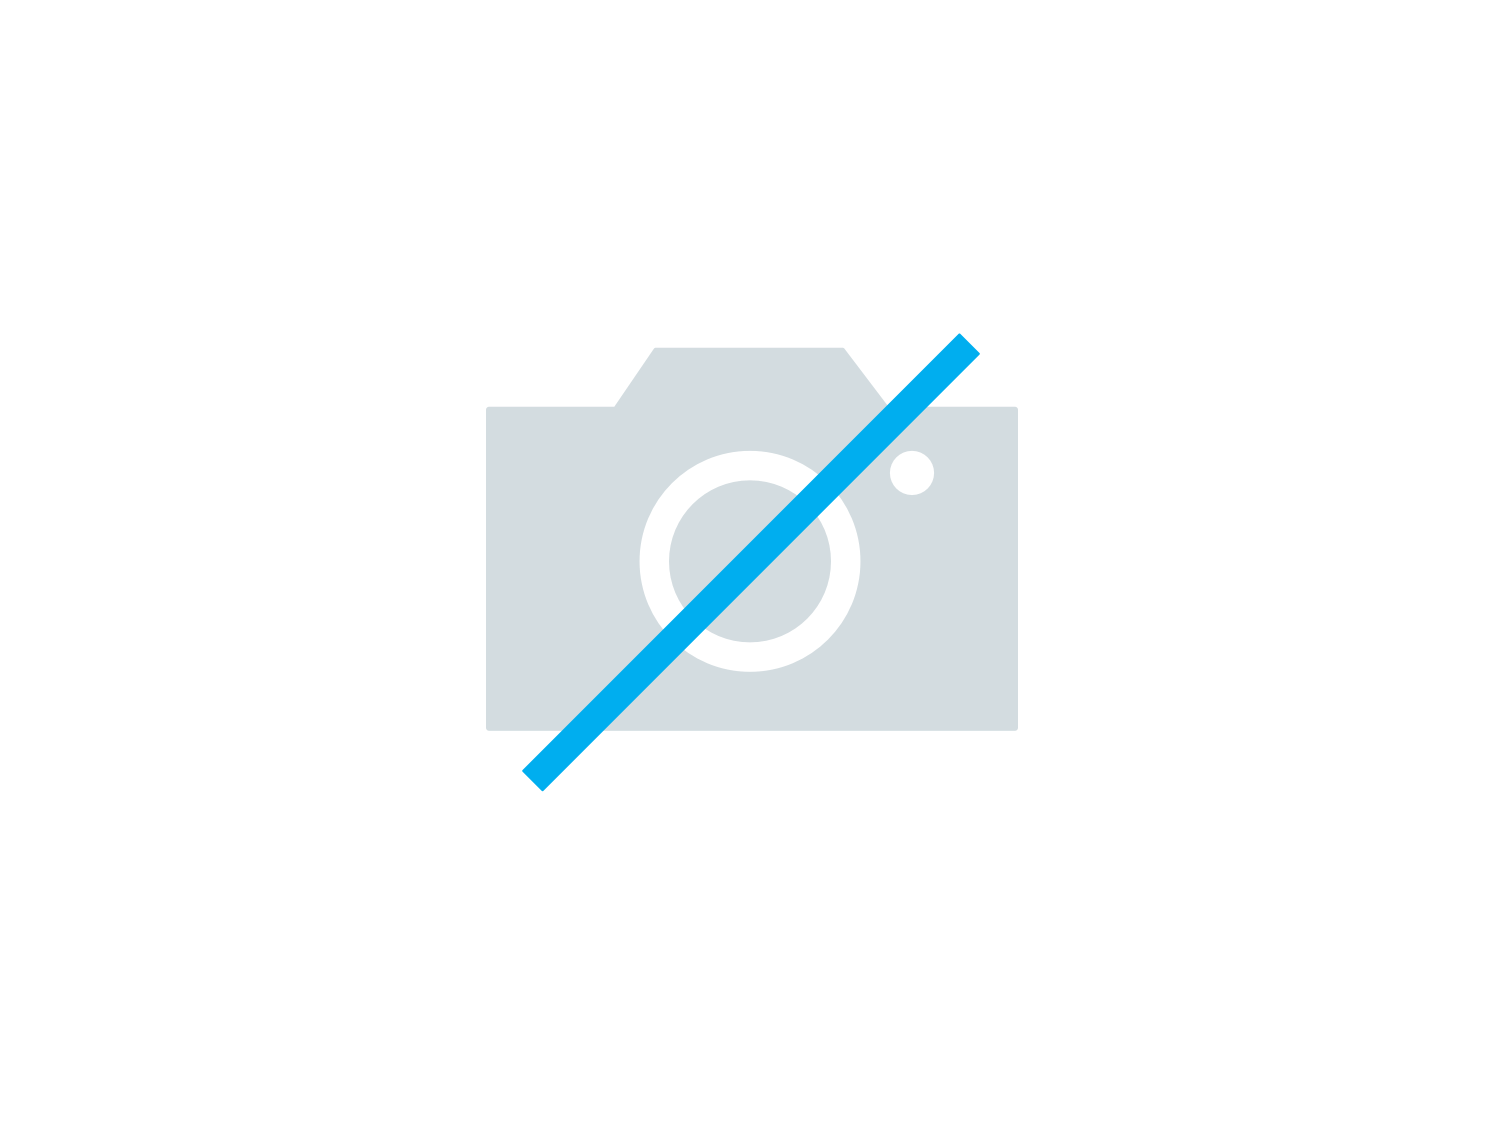 Staande lamp Coco H144cm